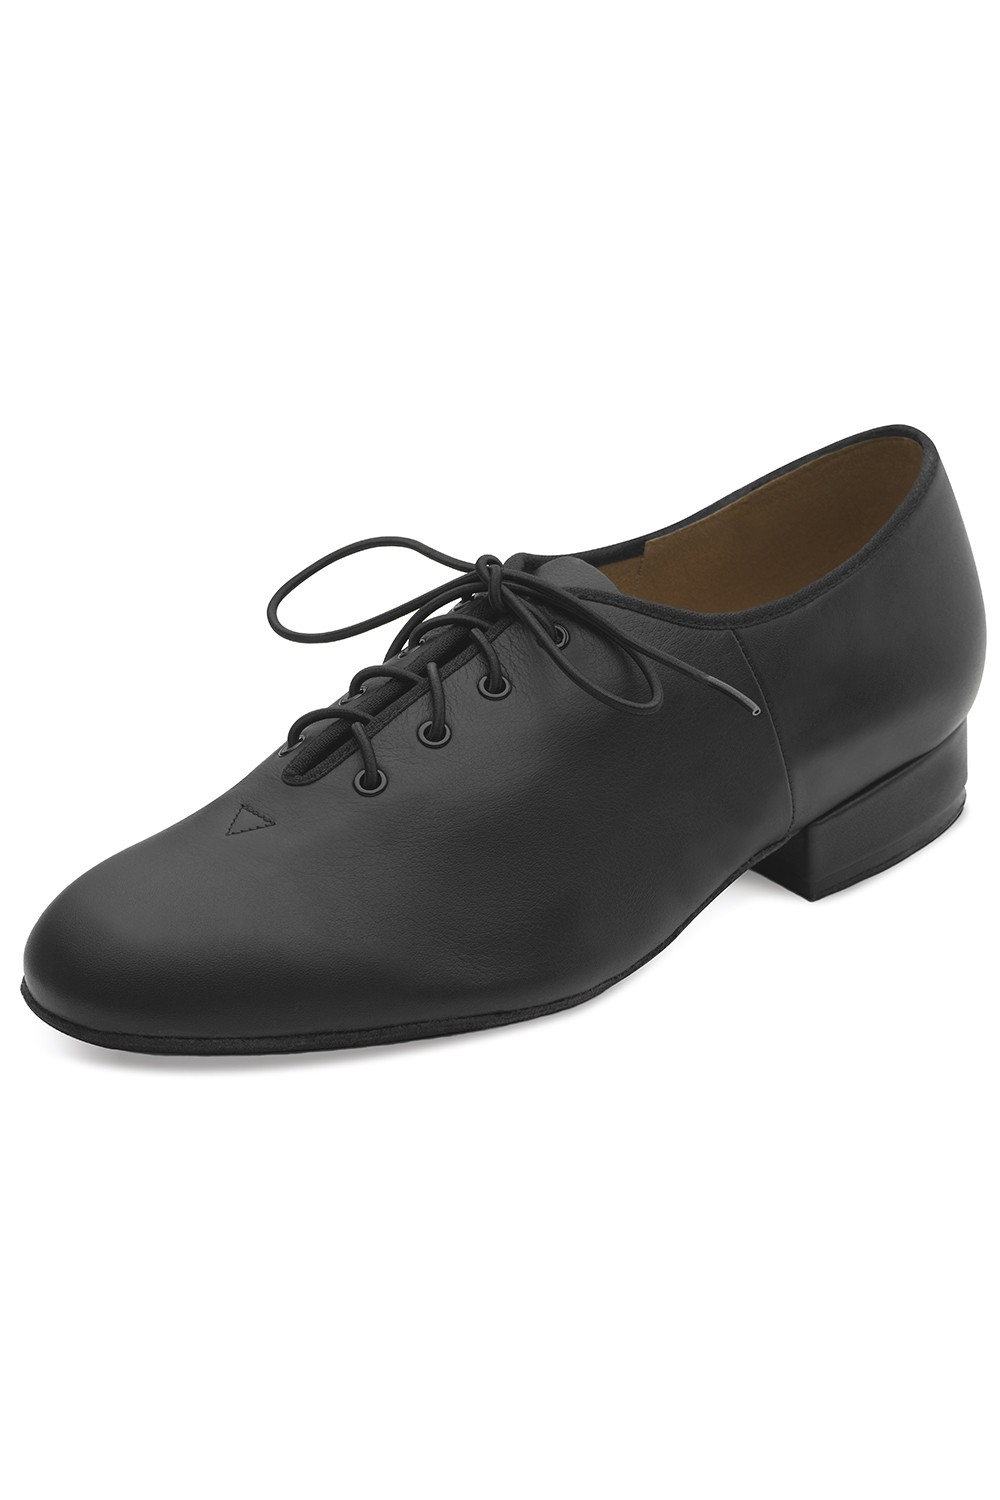 Jazz Oxford Men's Tap Shoes